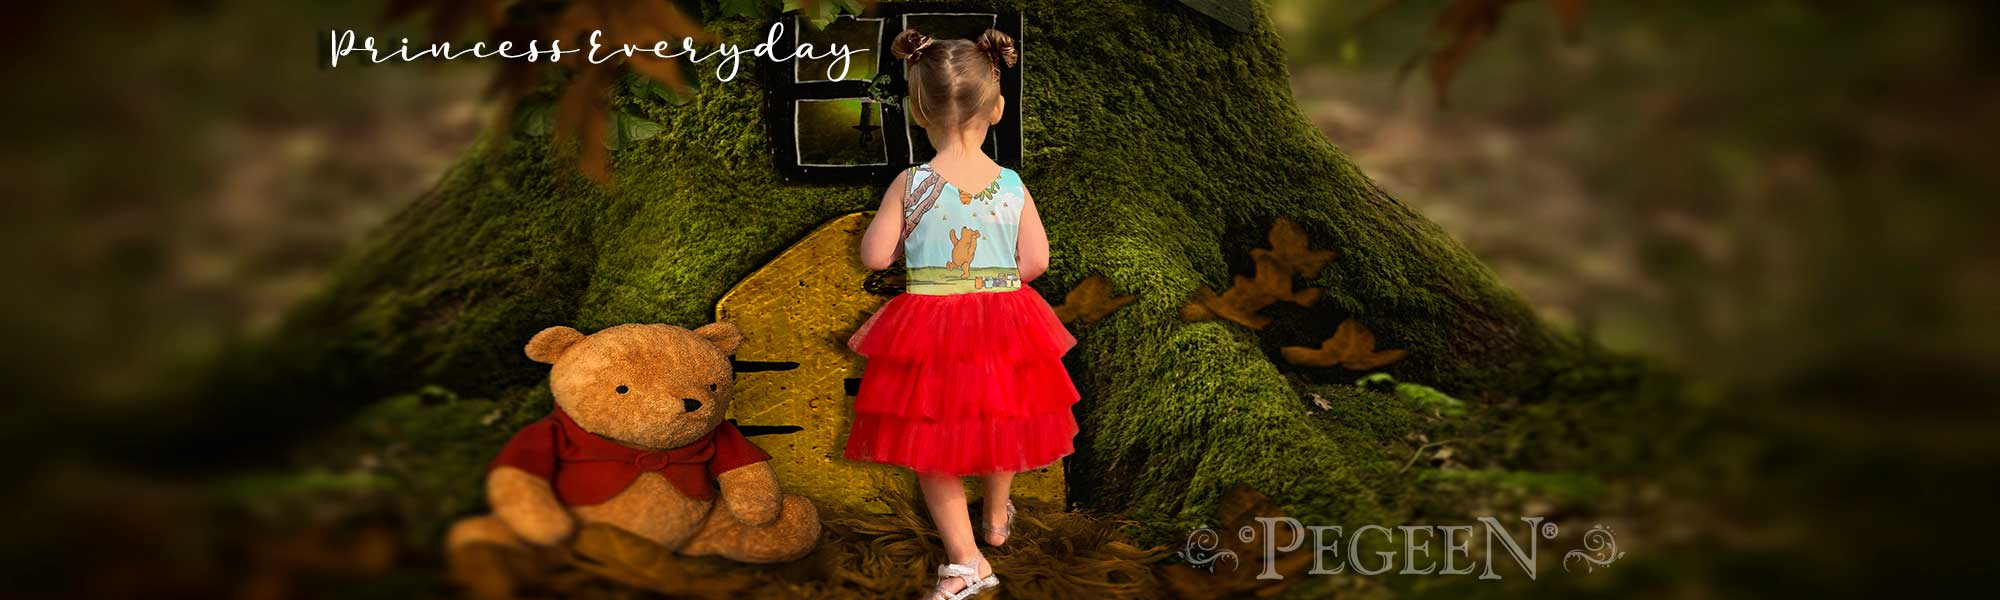 Everyday Princess Collection Starting $69